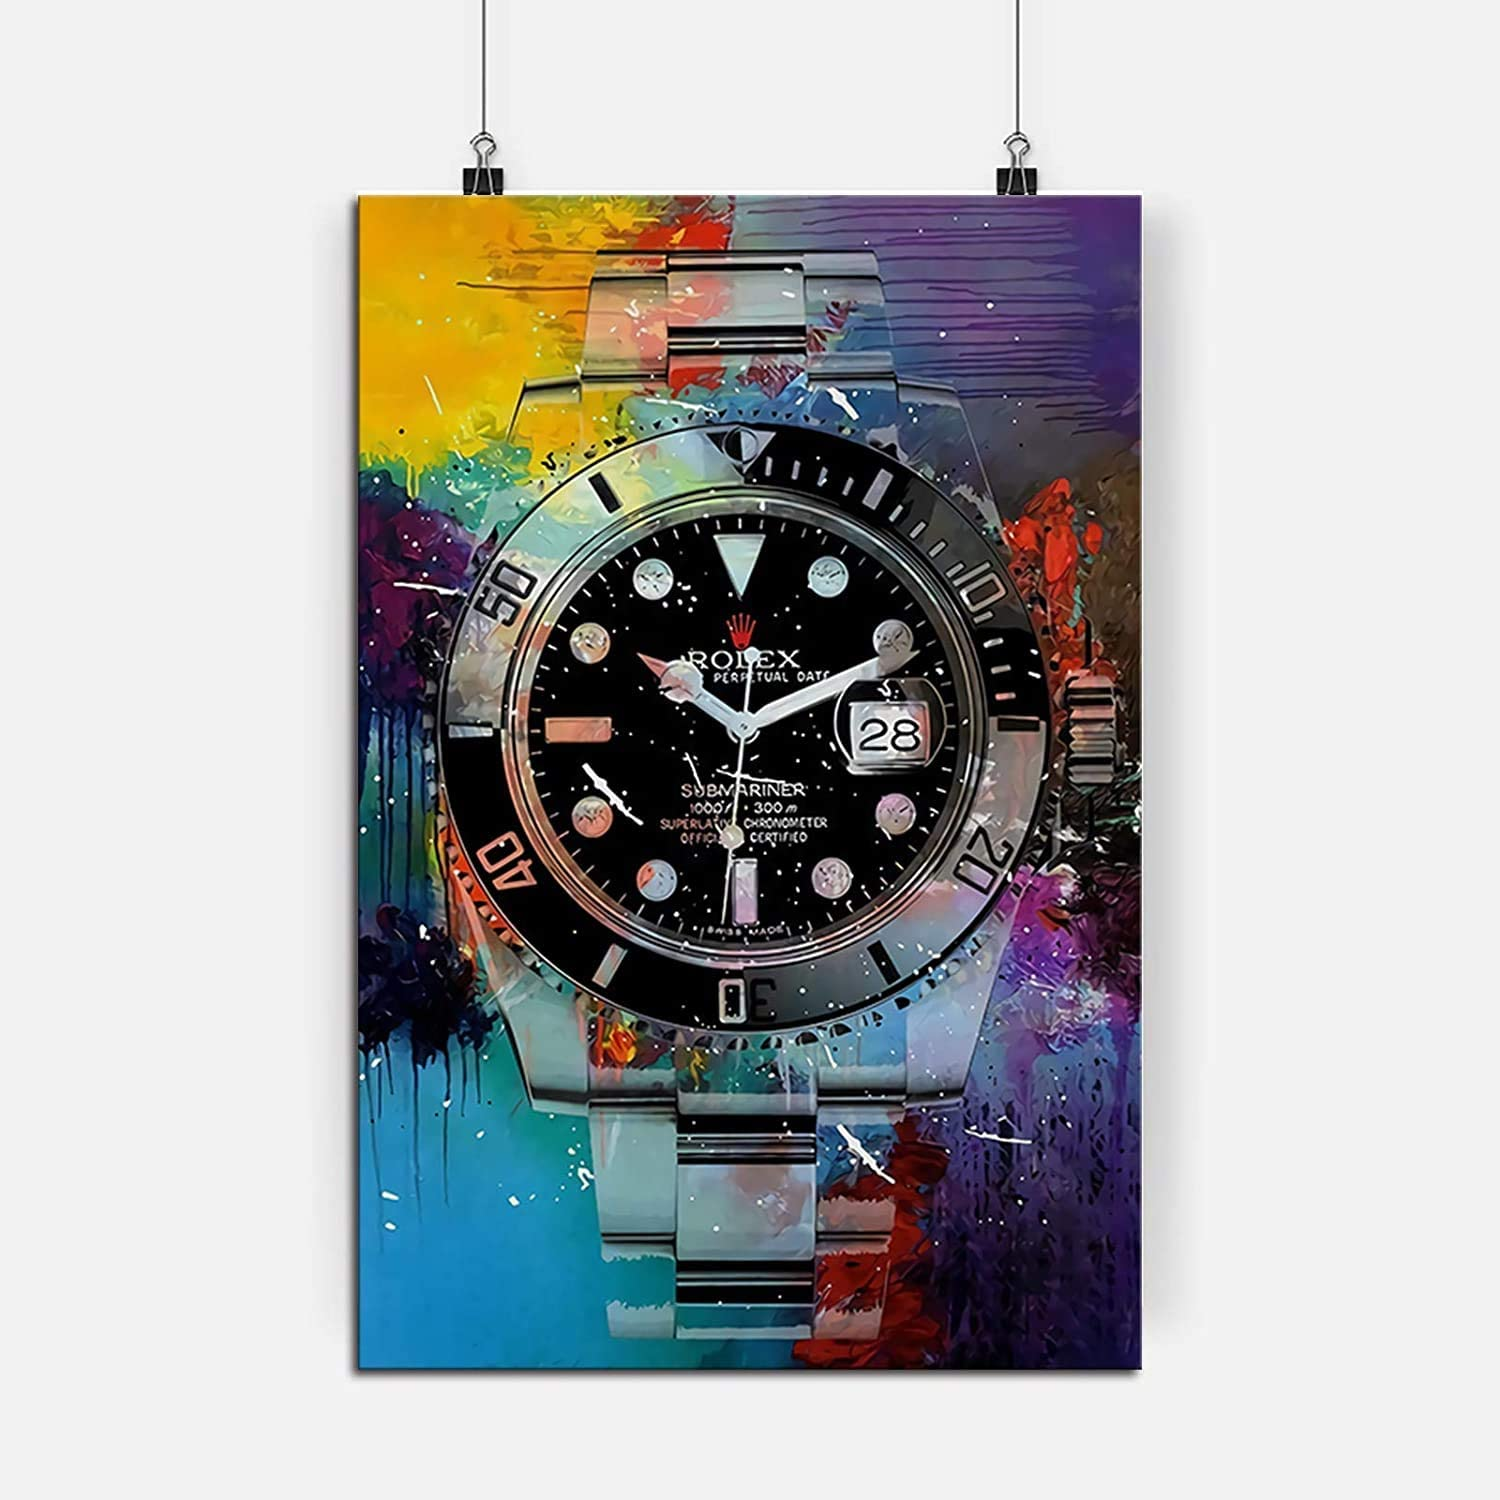 RINWUNS Canvas Wall Art Perpetual Time, Poster Colorful Watch Painting Motivational Prints on Canvas Giclee Modern Home Decor No Frame Picture for Living Room Bedroom Office - 12x16in 1PC (Only Canvas)